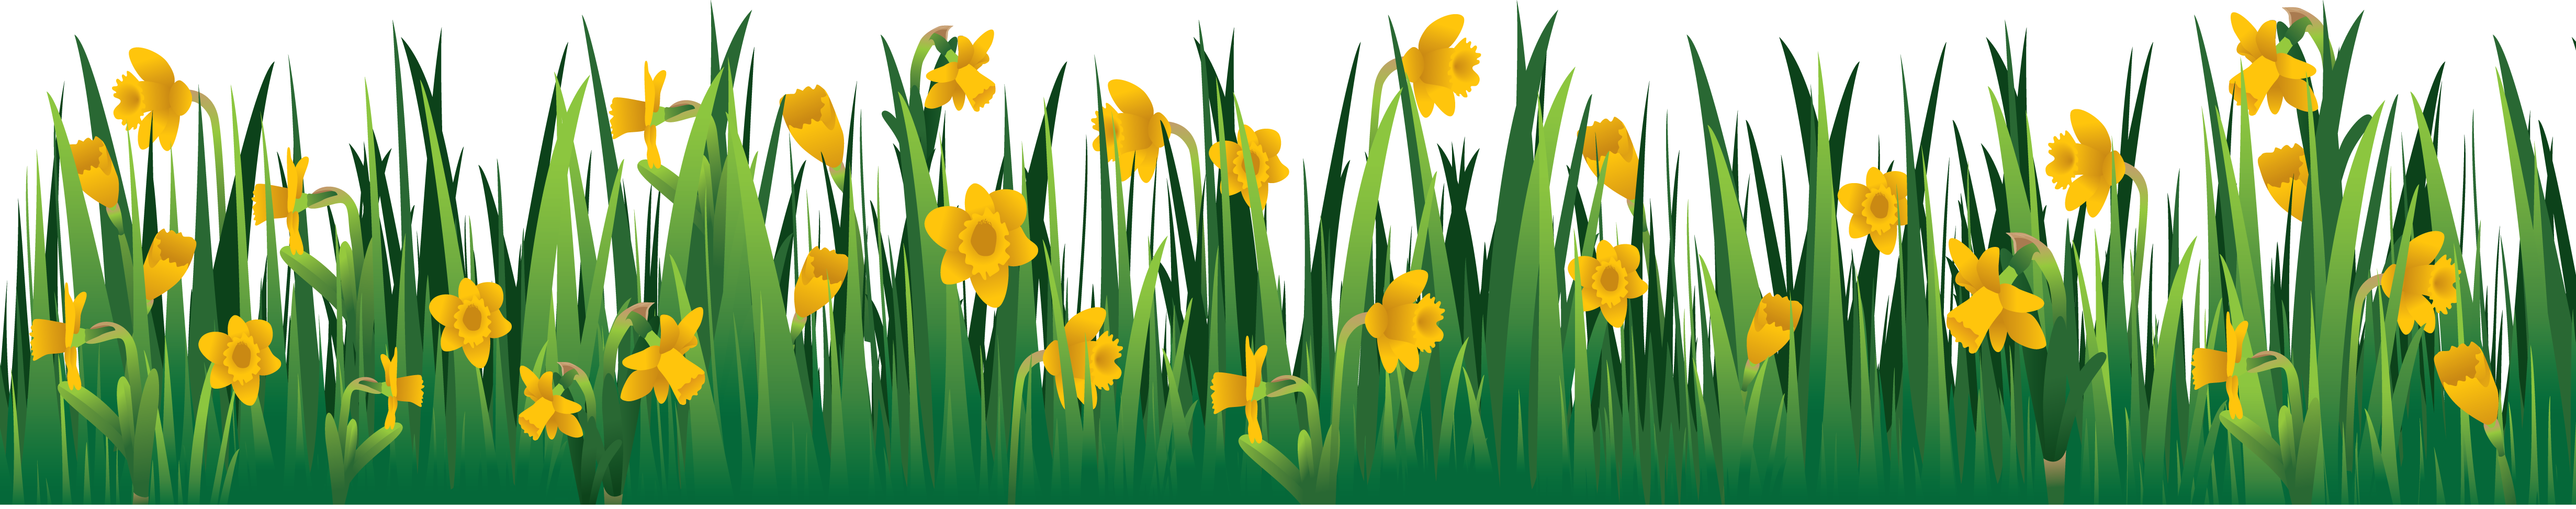 Grass flowers png. Images pictures image green